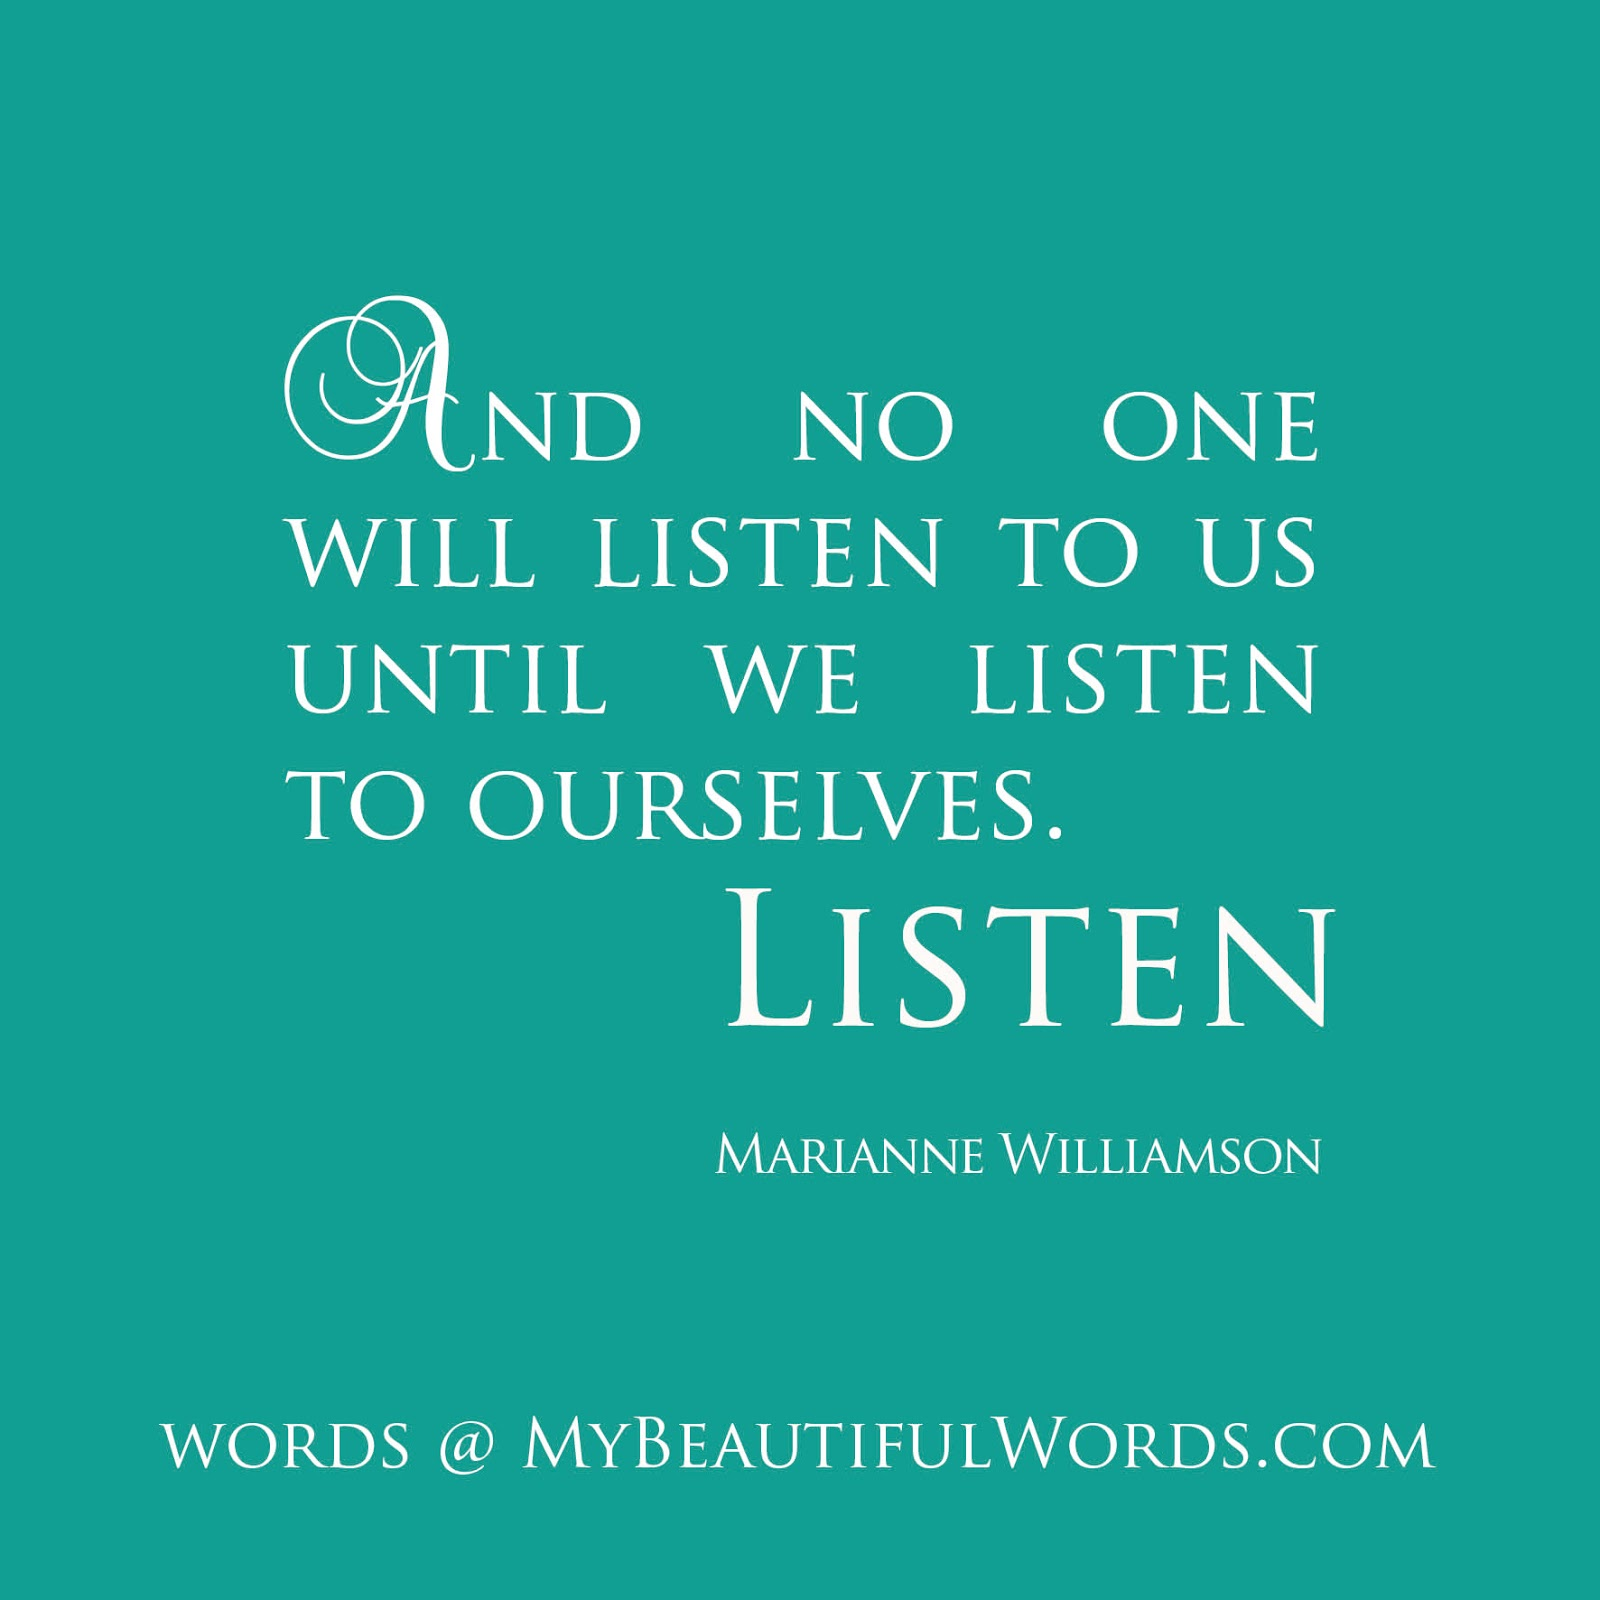 Marianne Williamson Love Quotes My Beautiful Words. Listen.